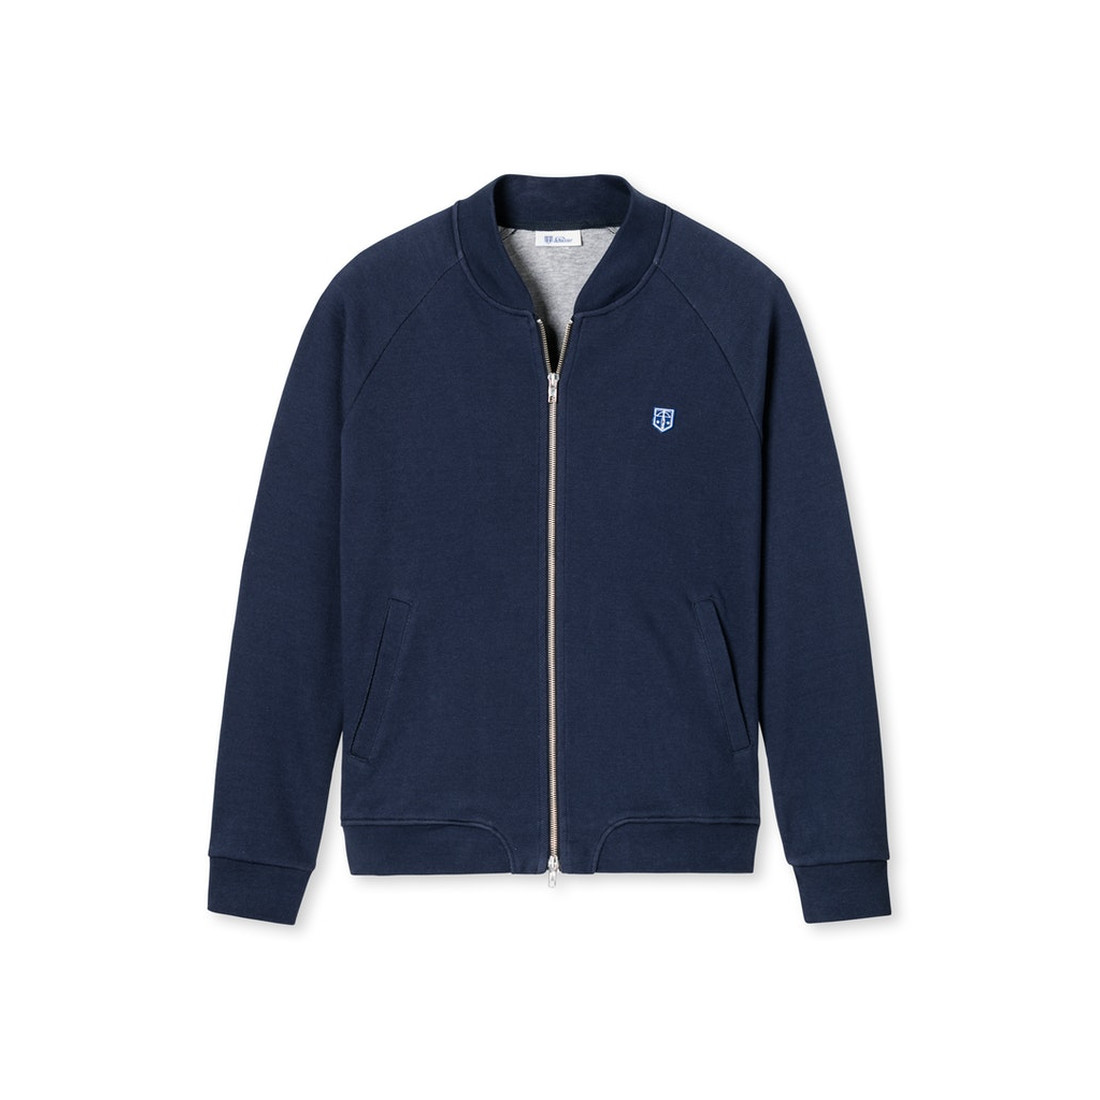 Blouson - Peter - navy by Schiesser Revival